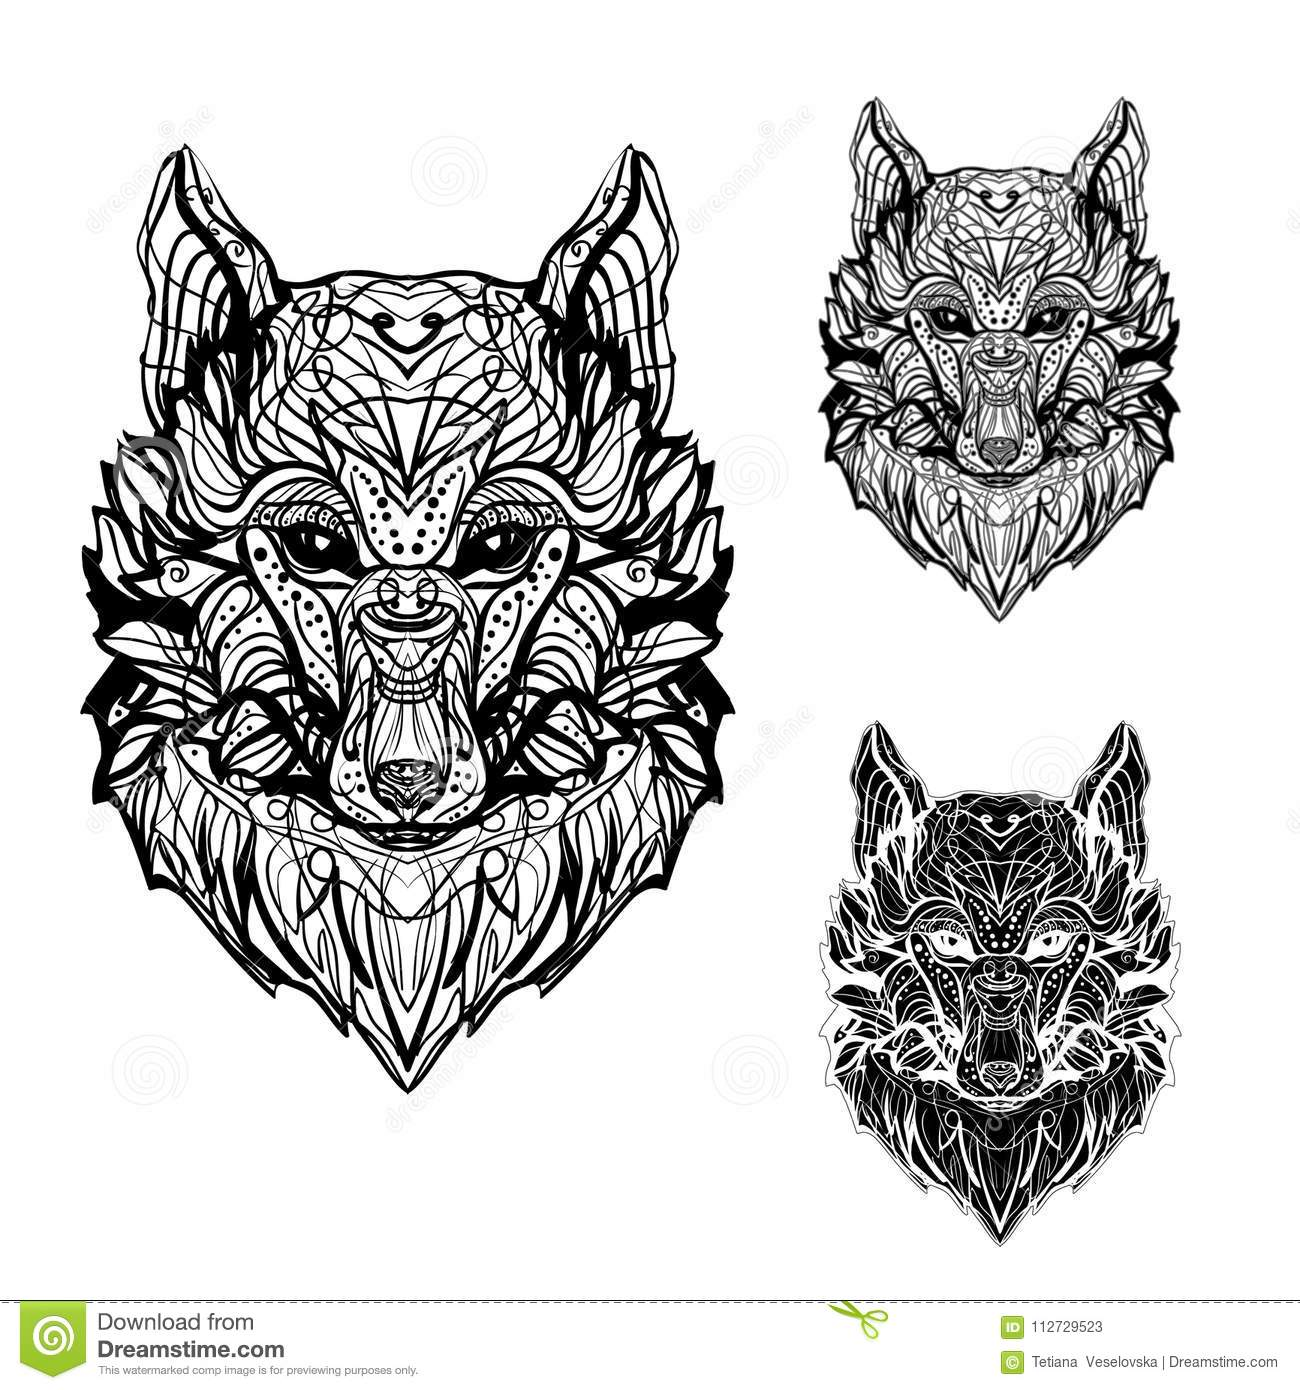 Abstract Image Of A Wolf For Tattoos And Printing On Paper